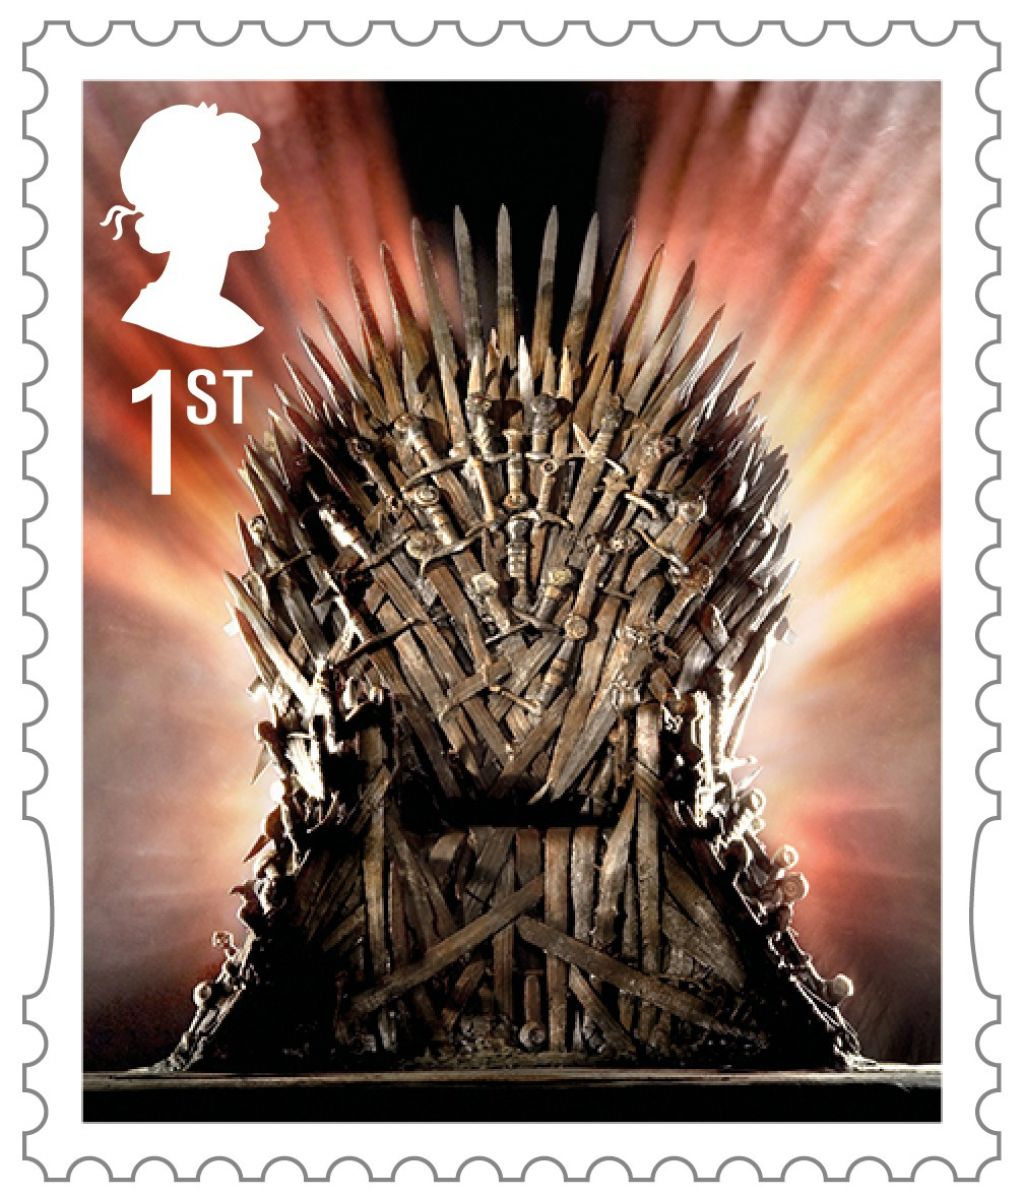 Game of Thrones Stamps - The Iron Throne